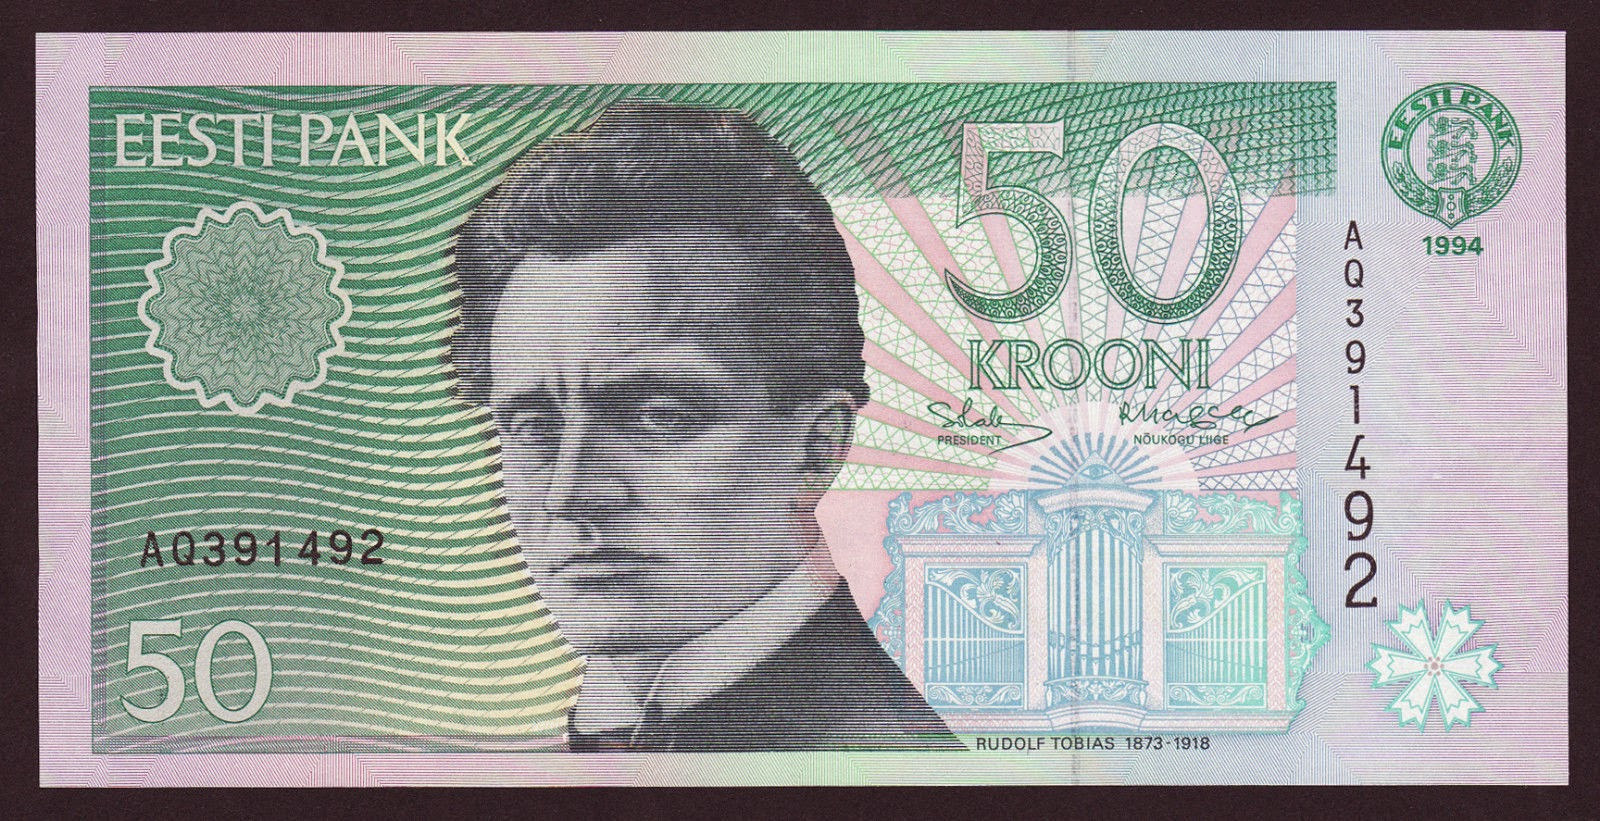 Estonia currency money 50 krooni banknote, Rudolf Tobias